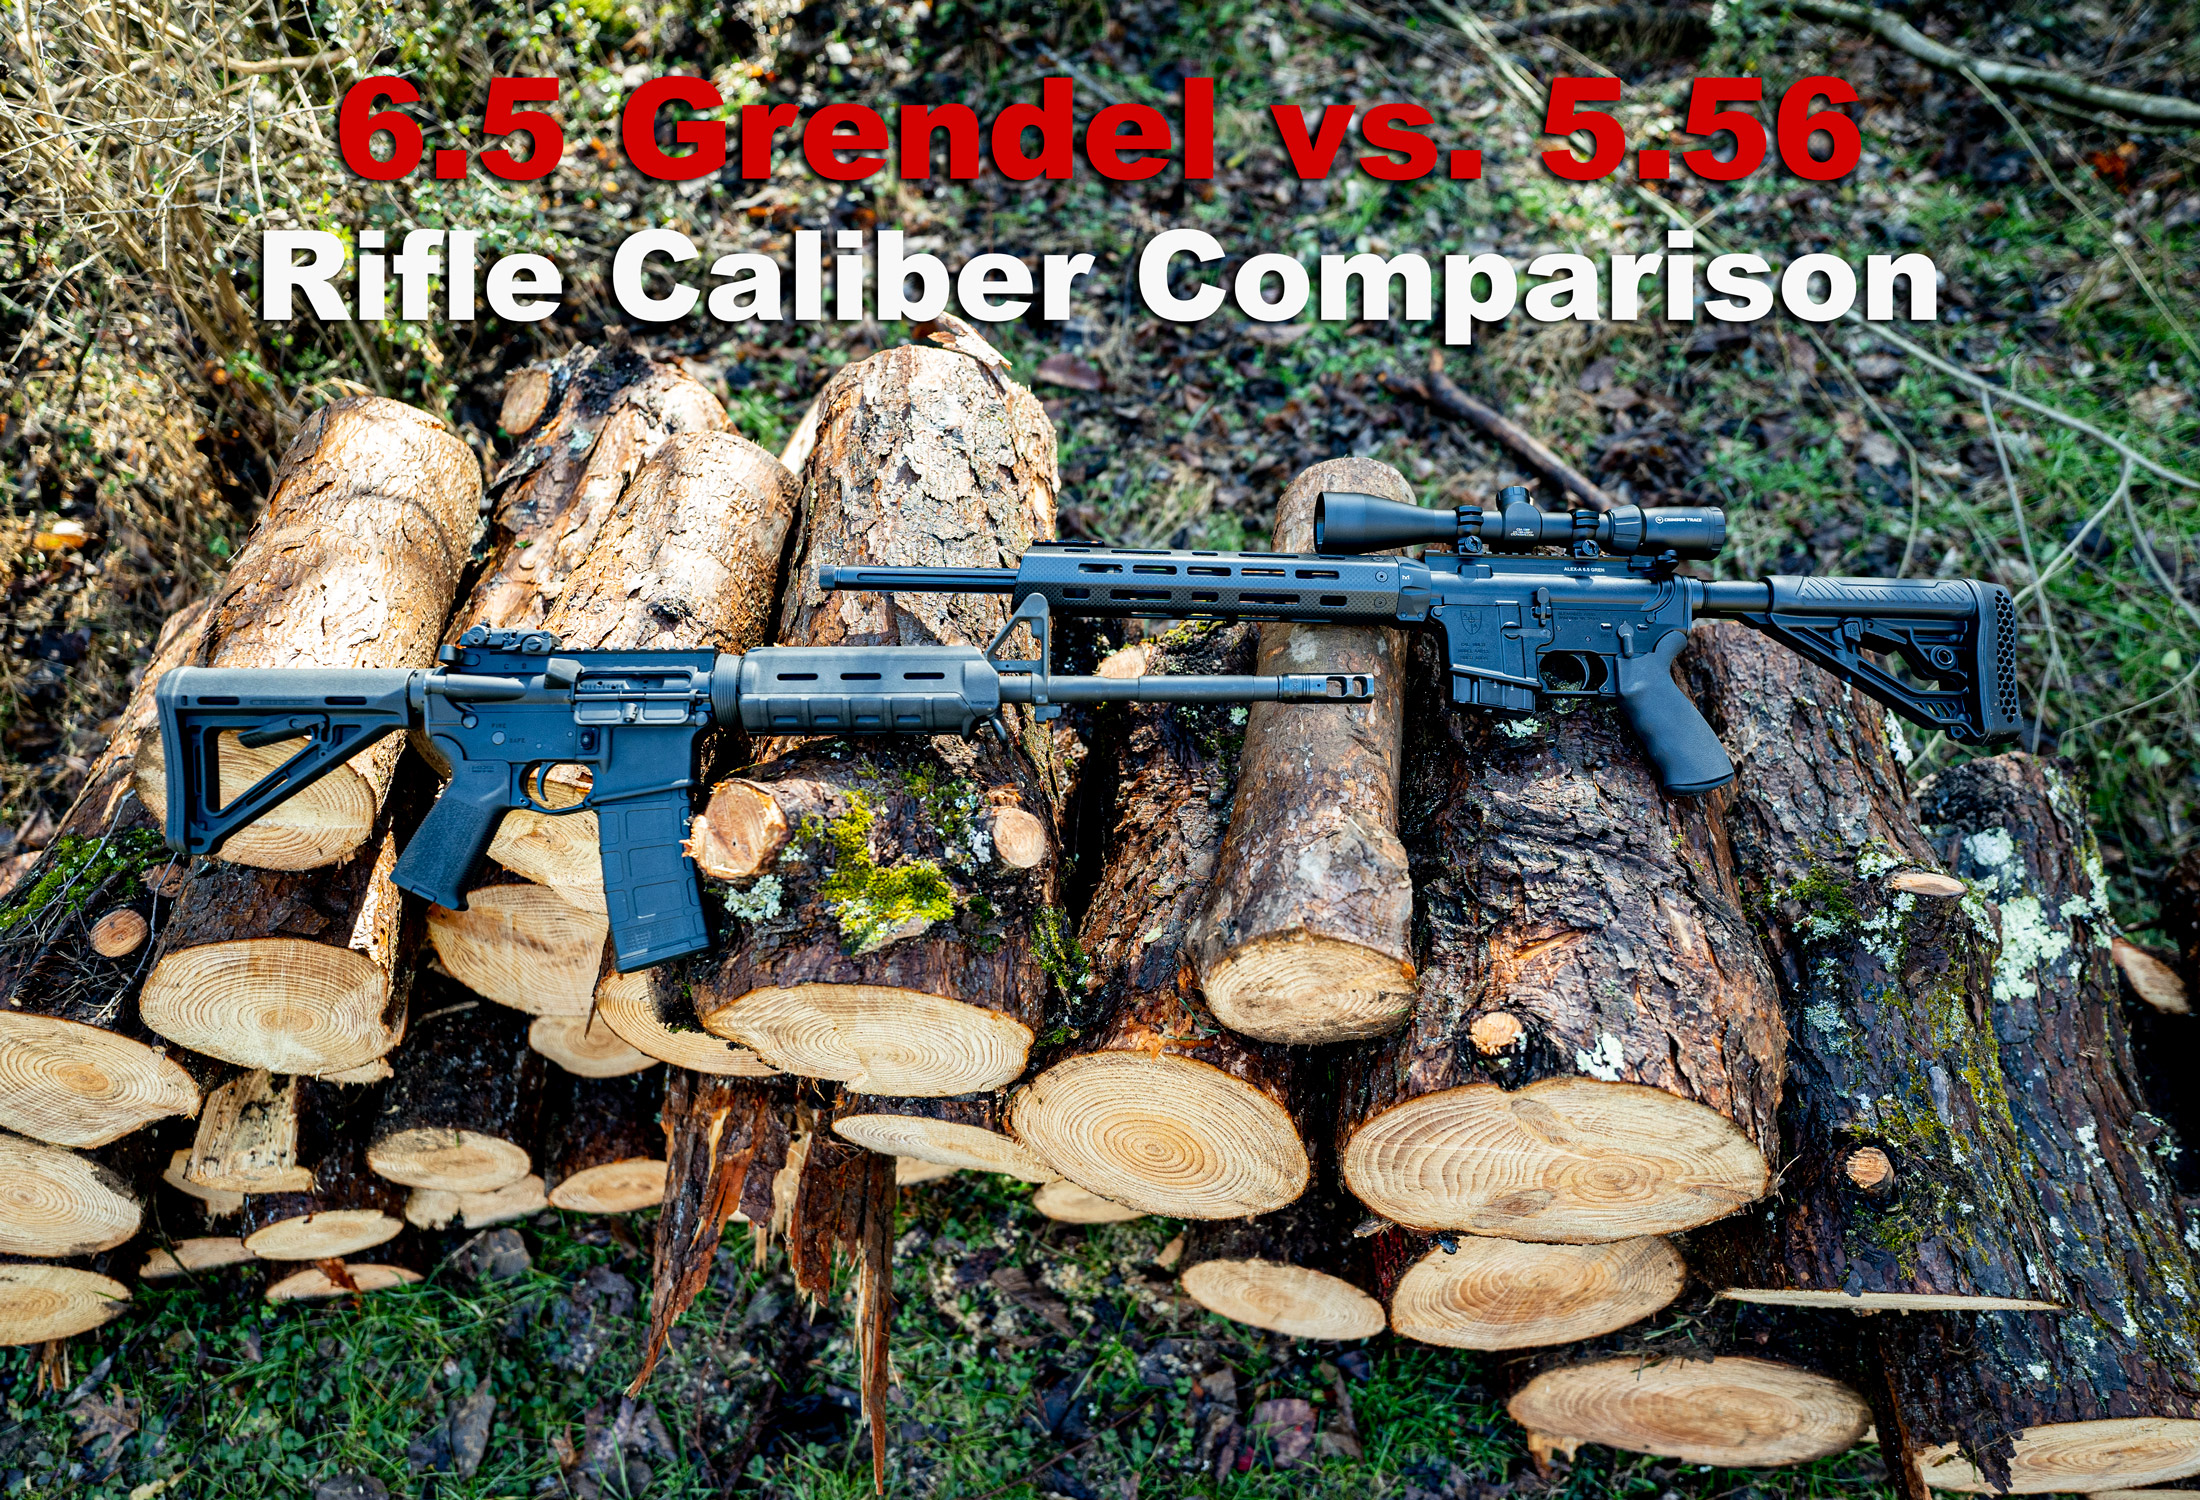 6.5 grendel vs 5.56 rifles side by side at a shooting range